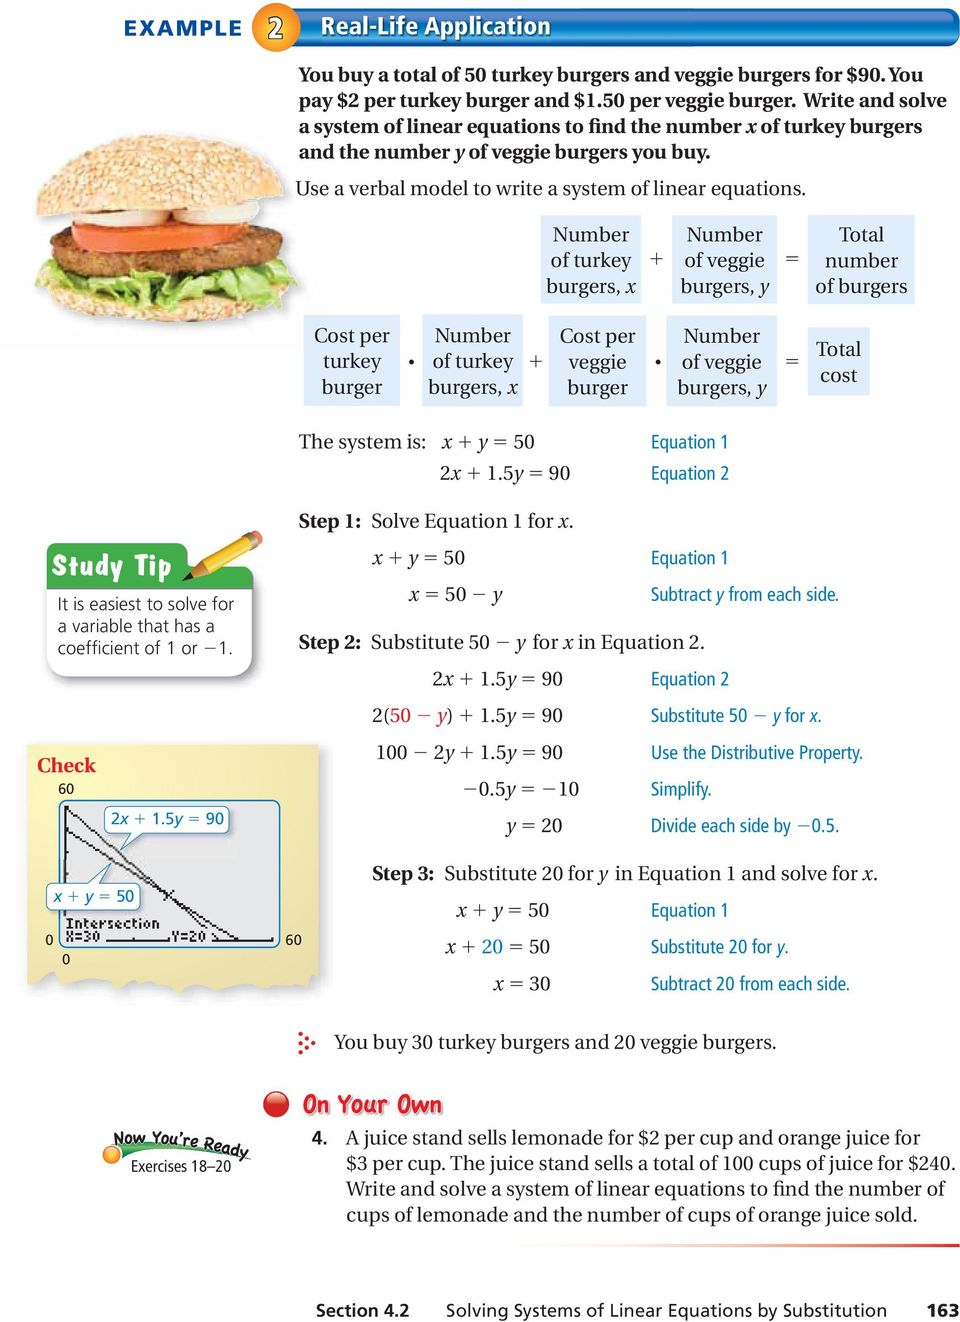 of turkey burgers, x + of veggie burgers, y = Total number of burgers Cost per turkey burger of turkey burgers, x + Cost per veggie burger of veggie burgers, y = Total cost The system is: x + y = 50